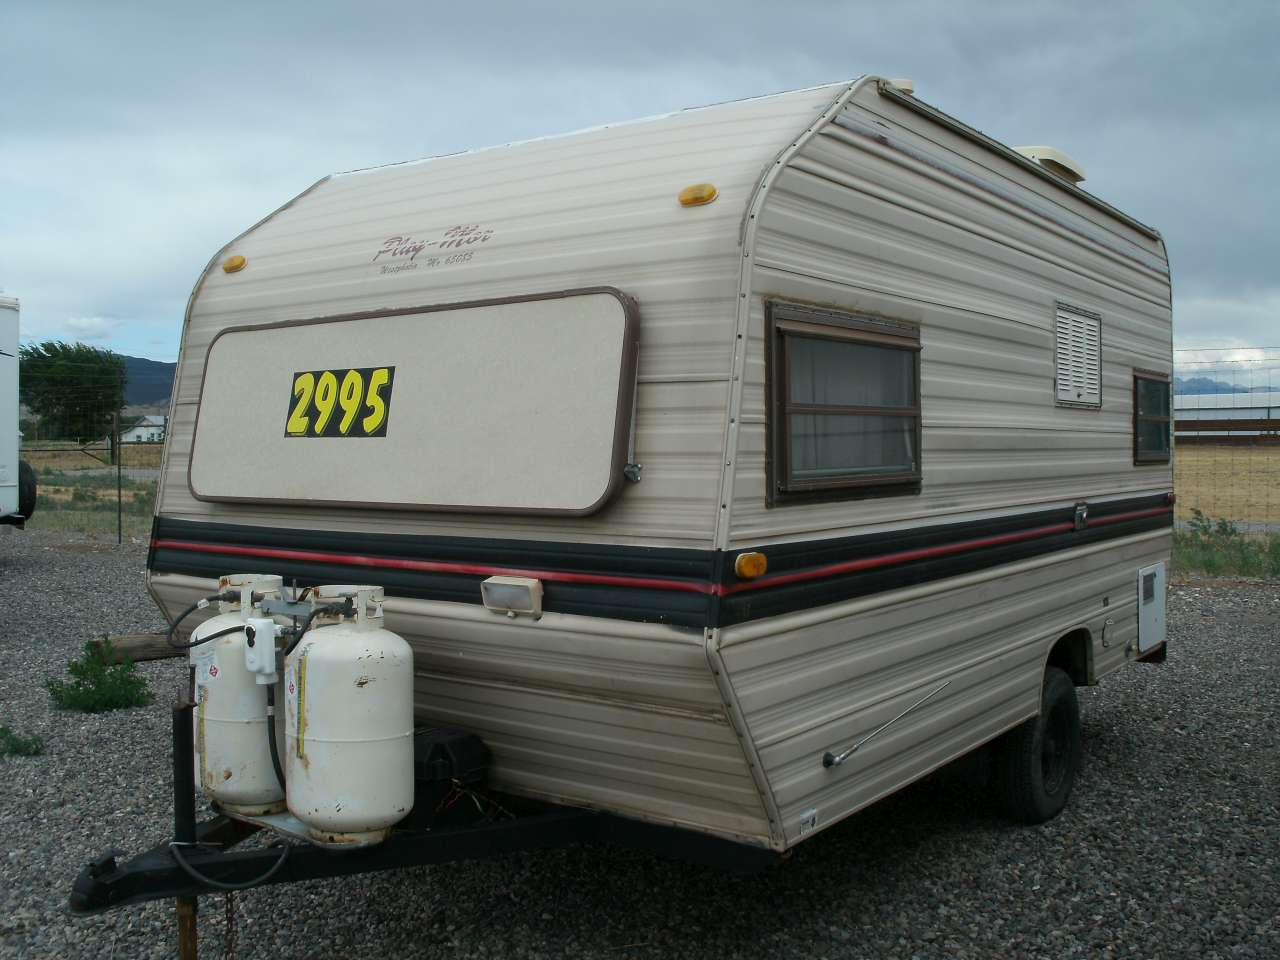 1986 PLAY-MOR M-1500 15 x 7 foot RV Trailer SOLD! | You Sell